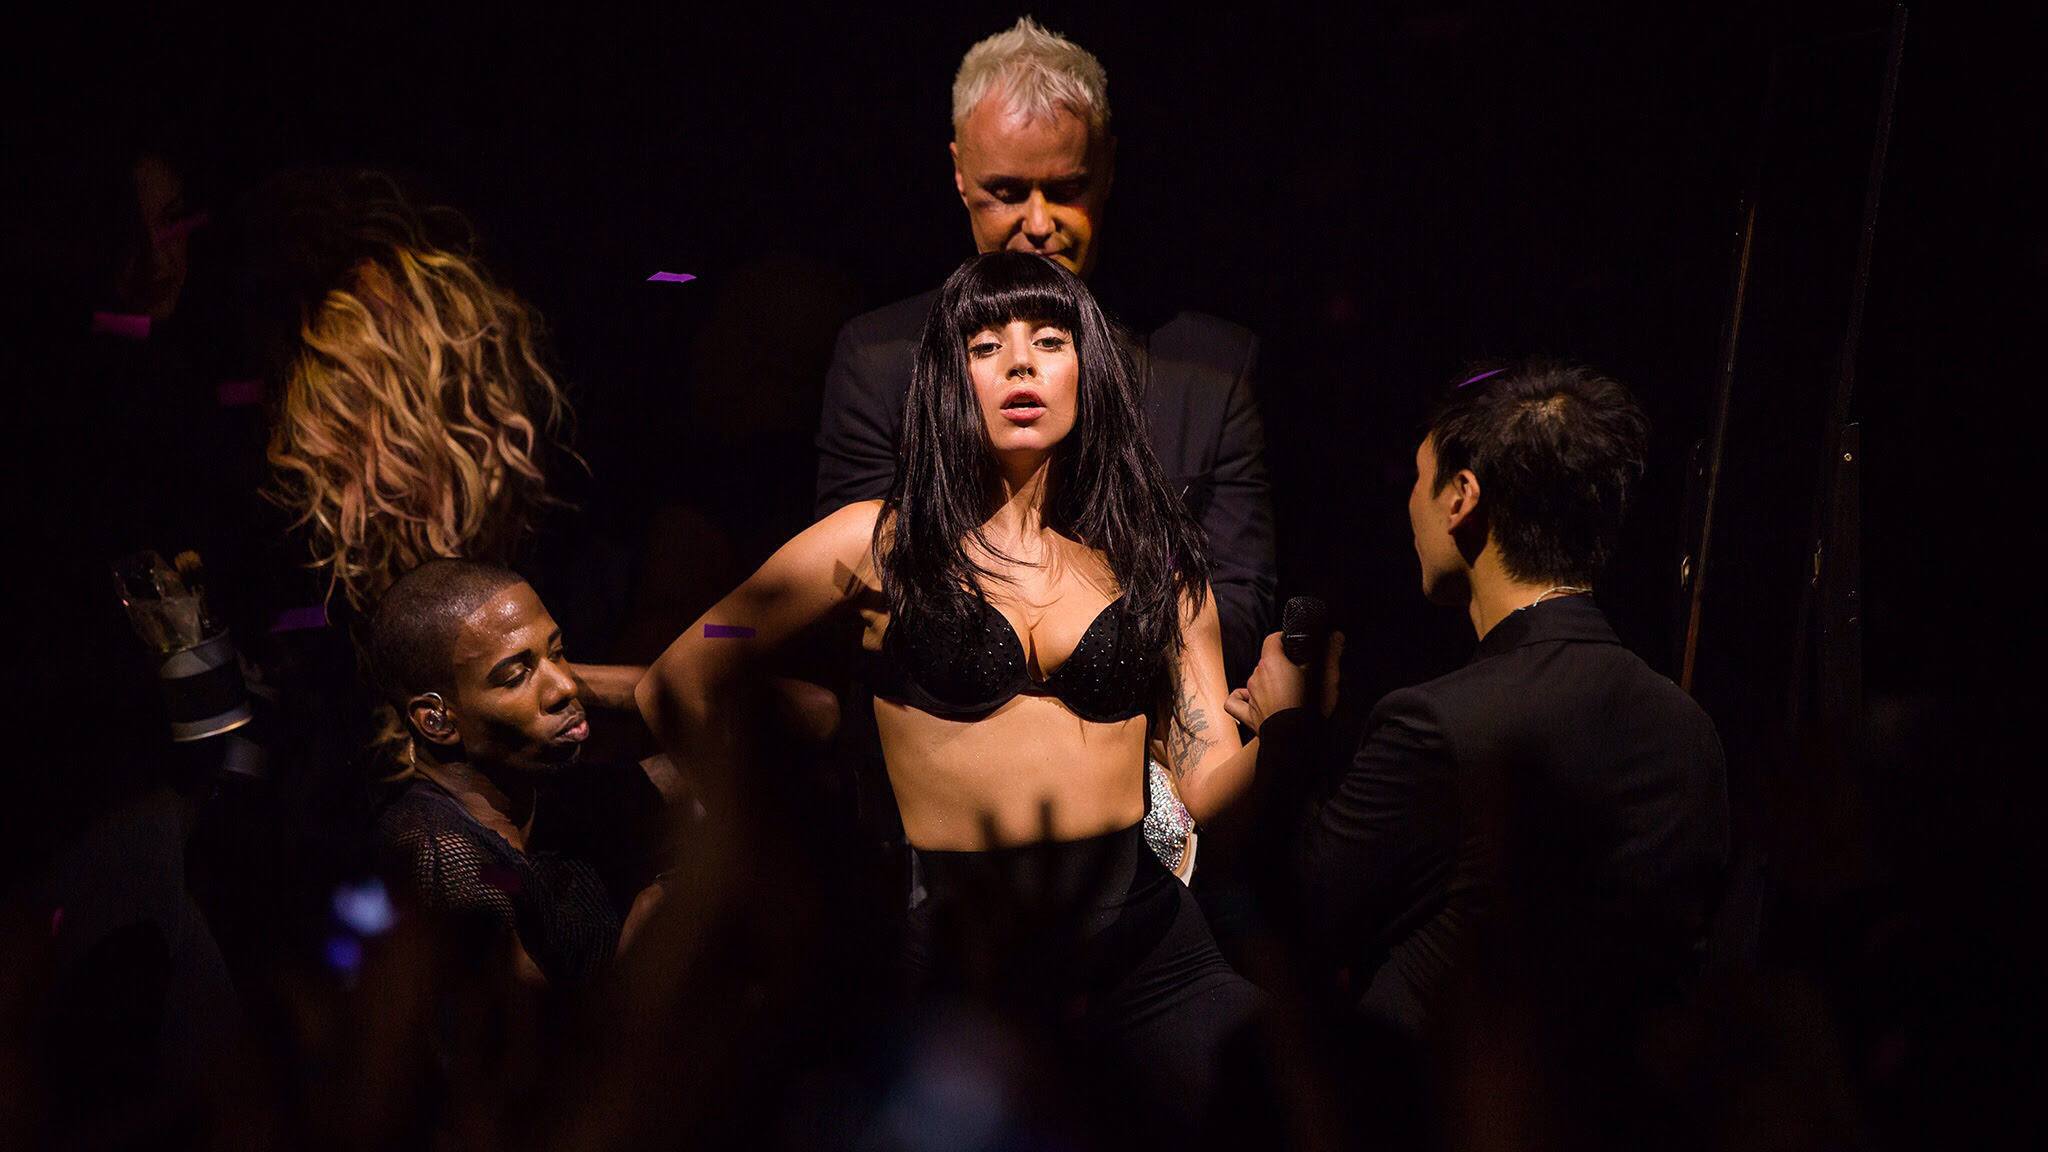 lady-gagas-spectacular-itunes-festival-2013-show-07